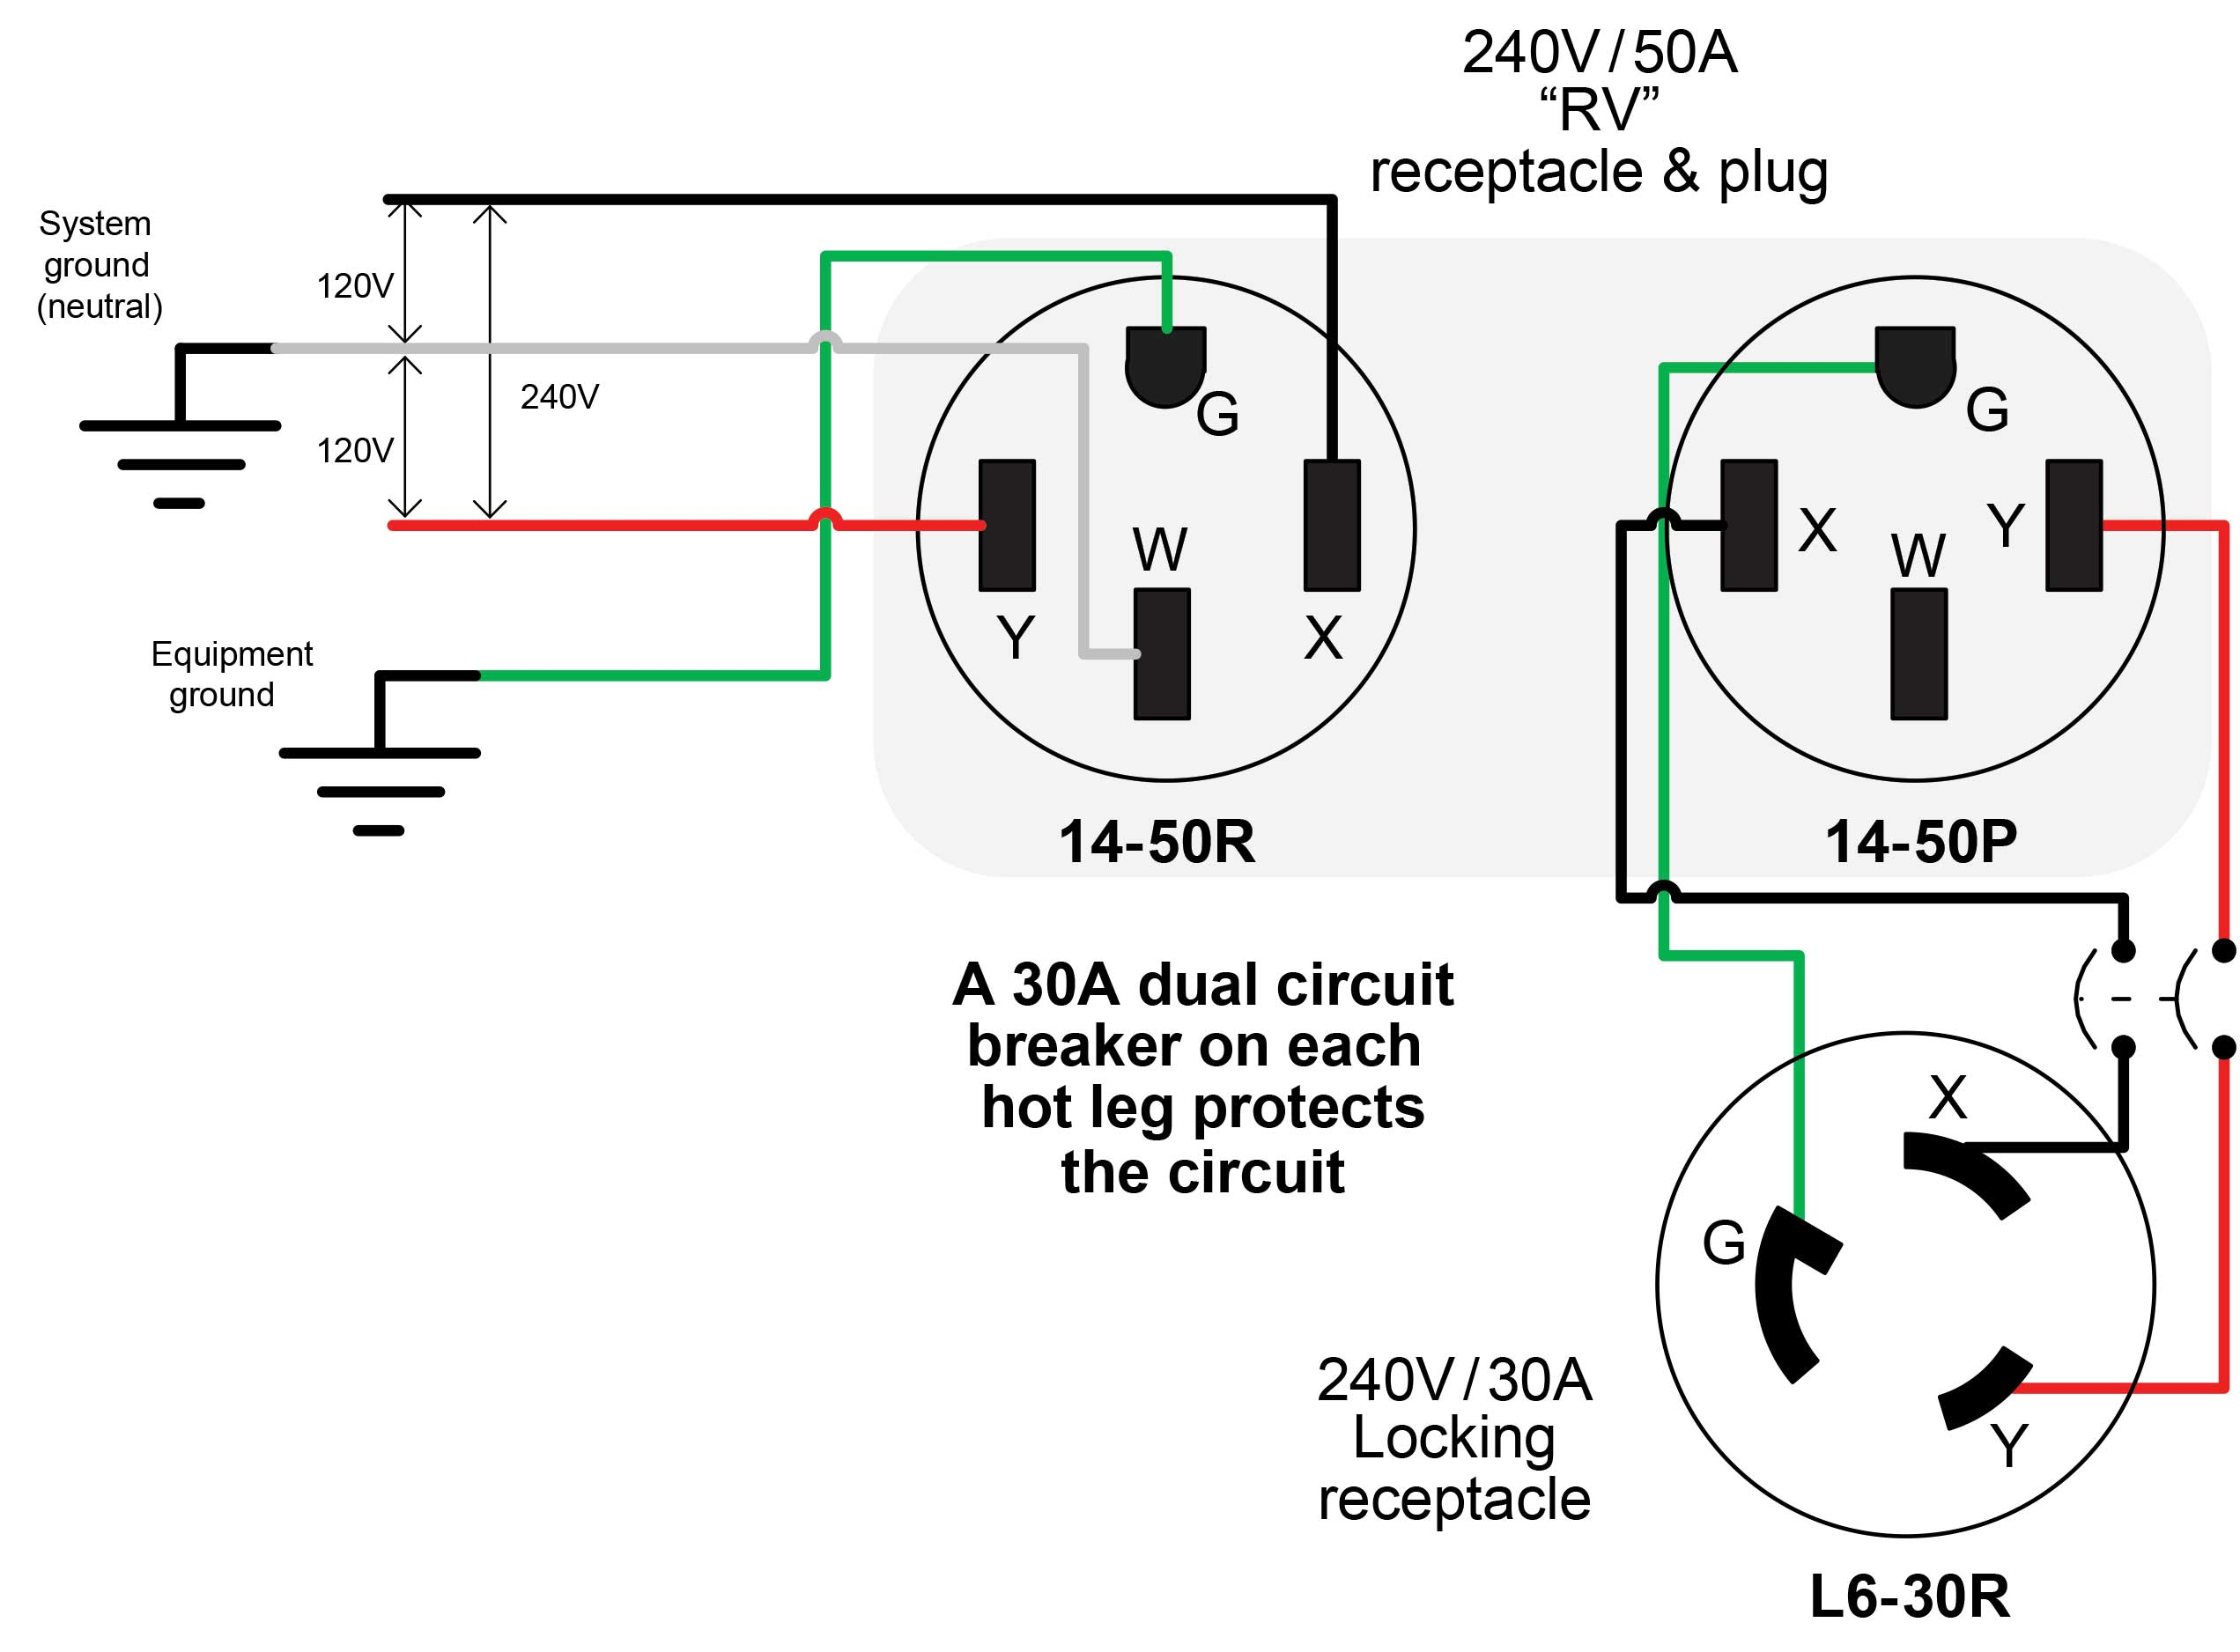 3 wire 240v wiring diagram with L6 30r Wiring Diagram on 2 Pole 3 Wire Grounding Diagram as well Wiring A Dusk To Dawn Photocell Sensor further Single Pole Switch Wiring Diagram Multiple Lights Power At together with 110v 220v Motor Wiring Diagram besides L6 30r Wiring Diagram.